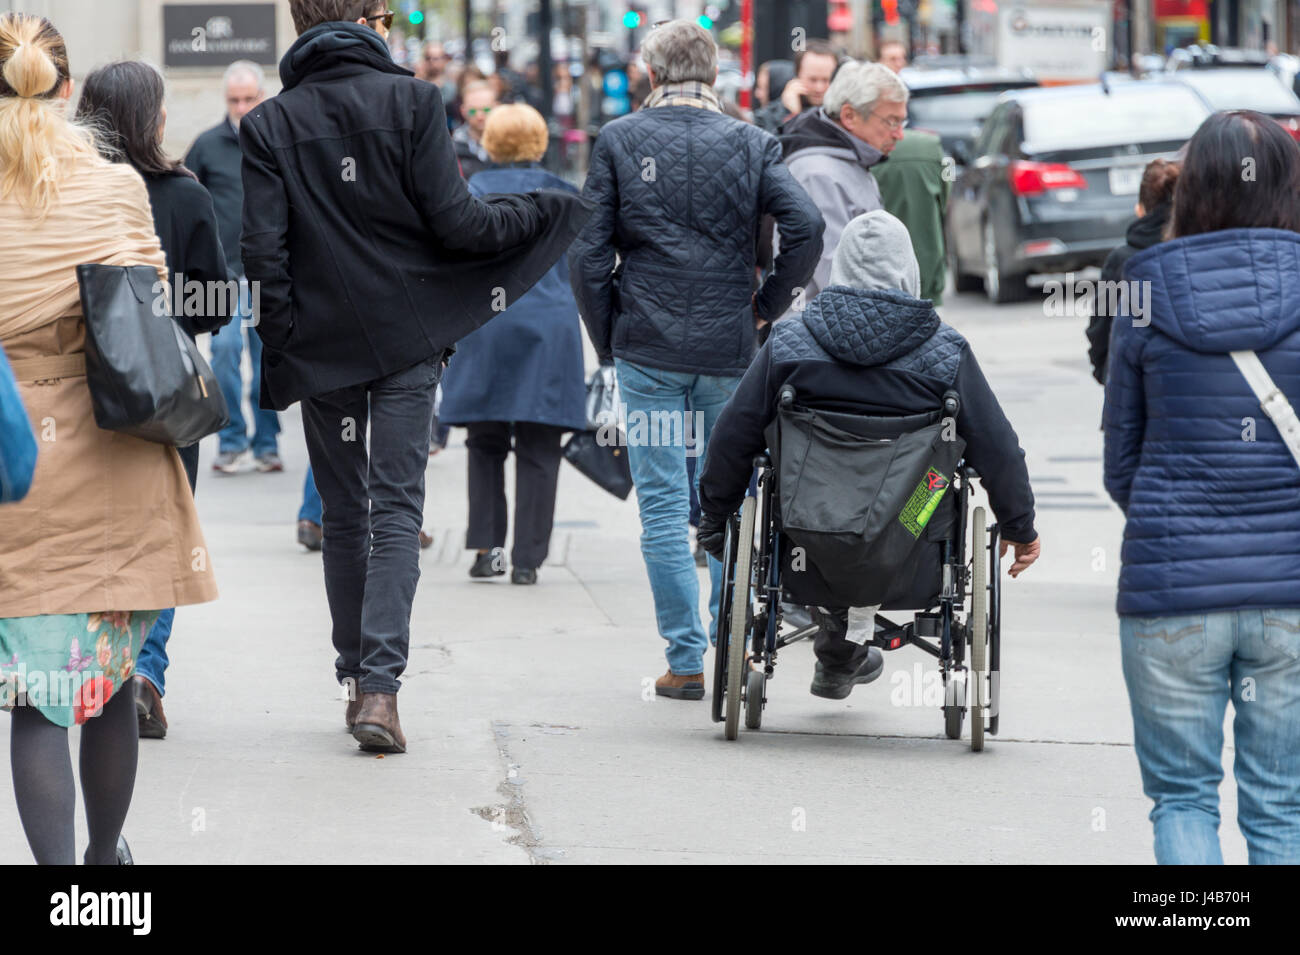 Disabled man sitting in a wheelchair on a busy street among crowd of people - Stock Image